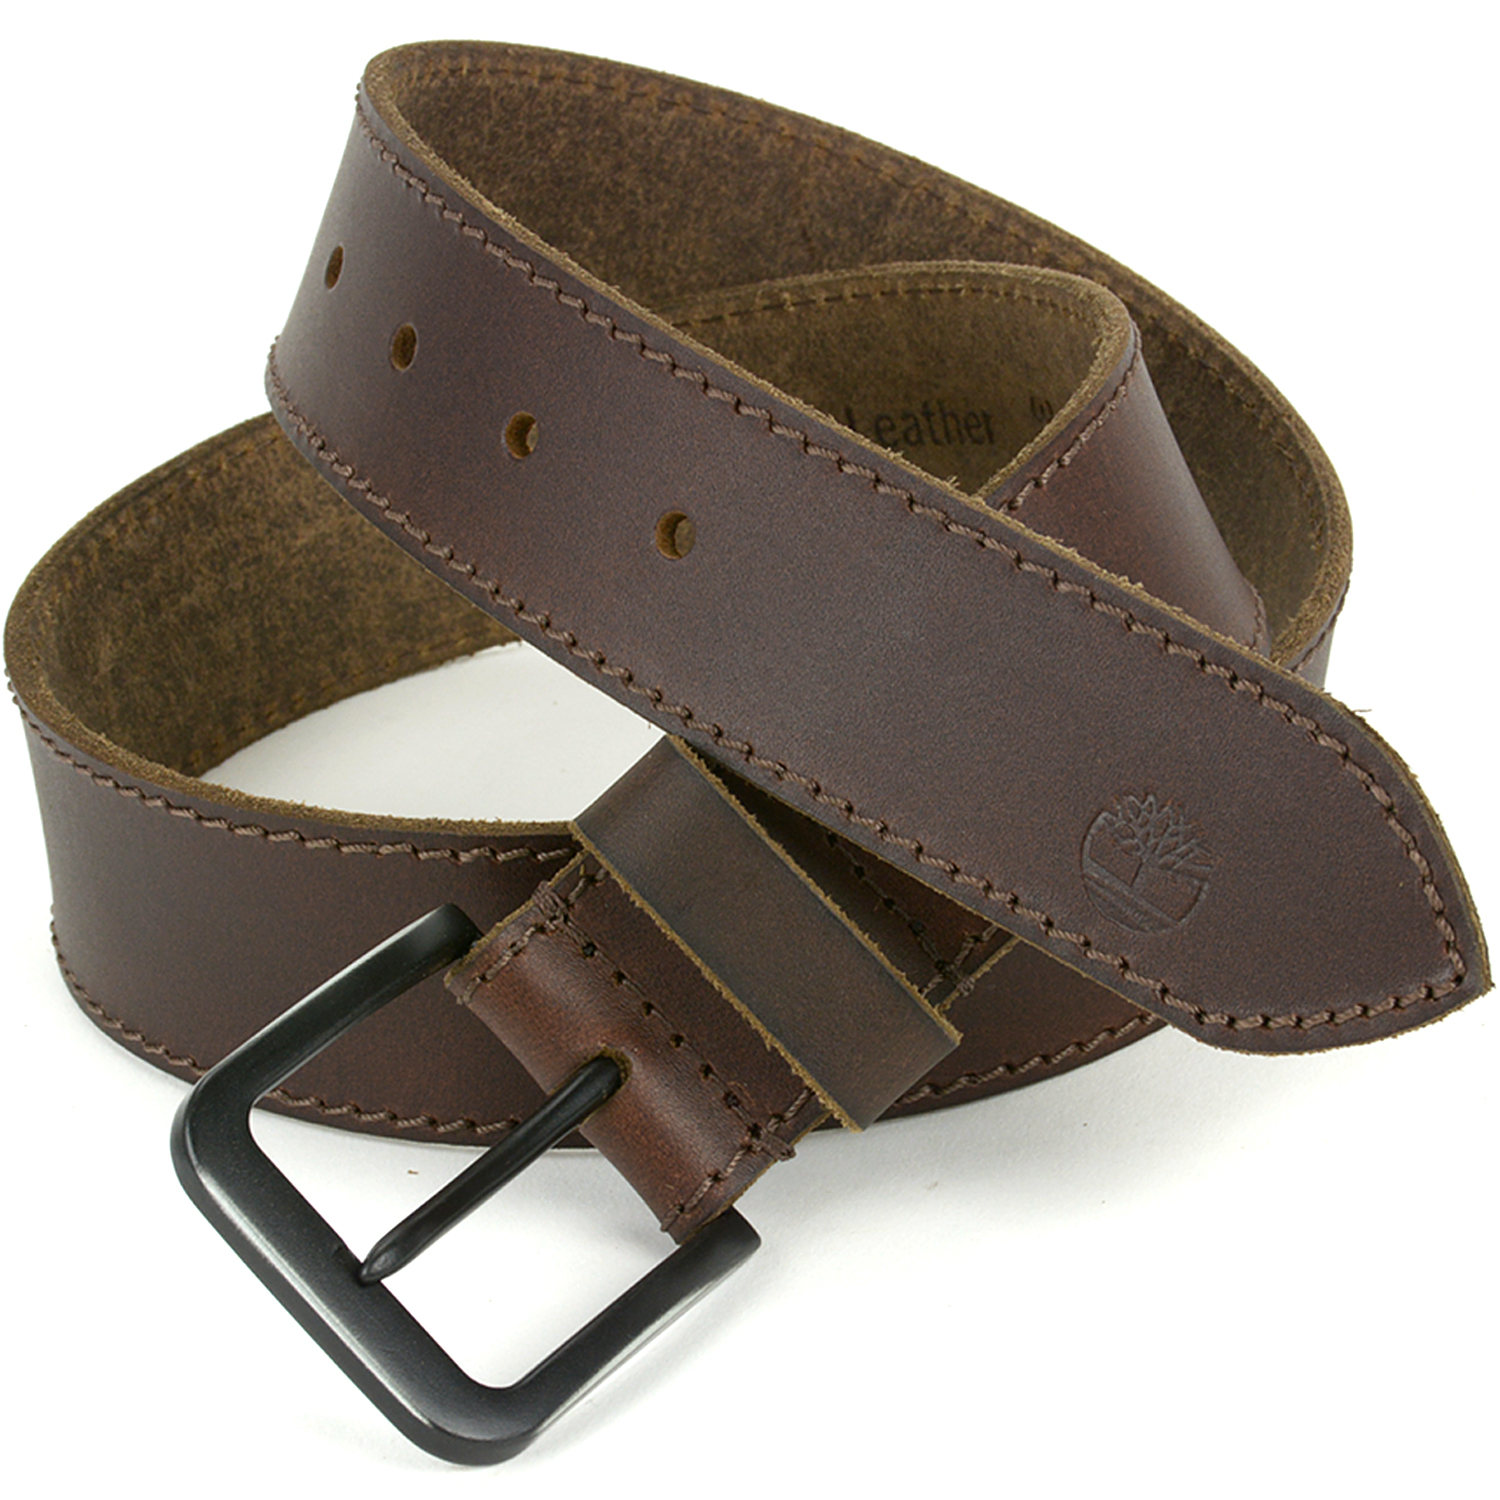 Timberland Men's Belt Genuine Leather Top Stitched Matte ...